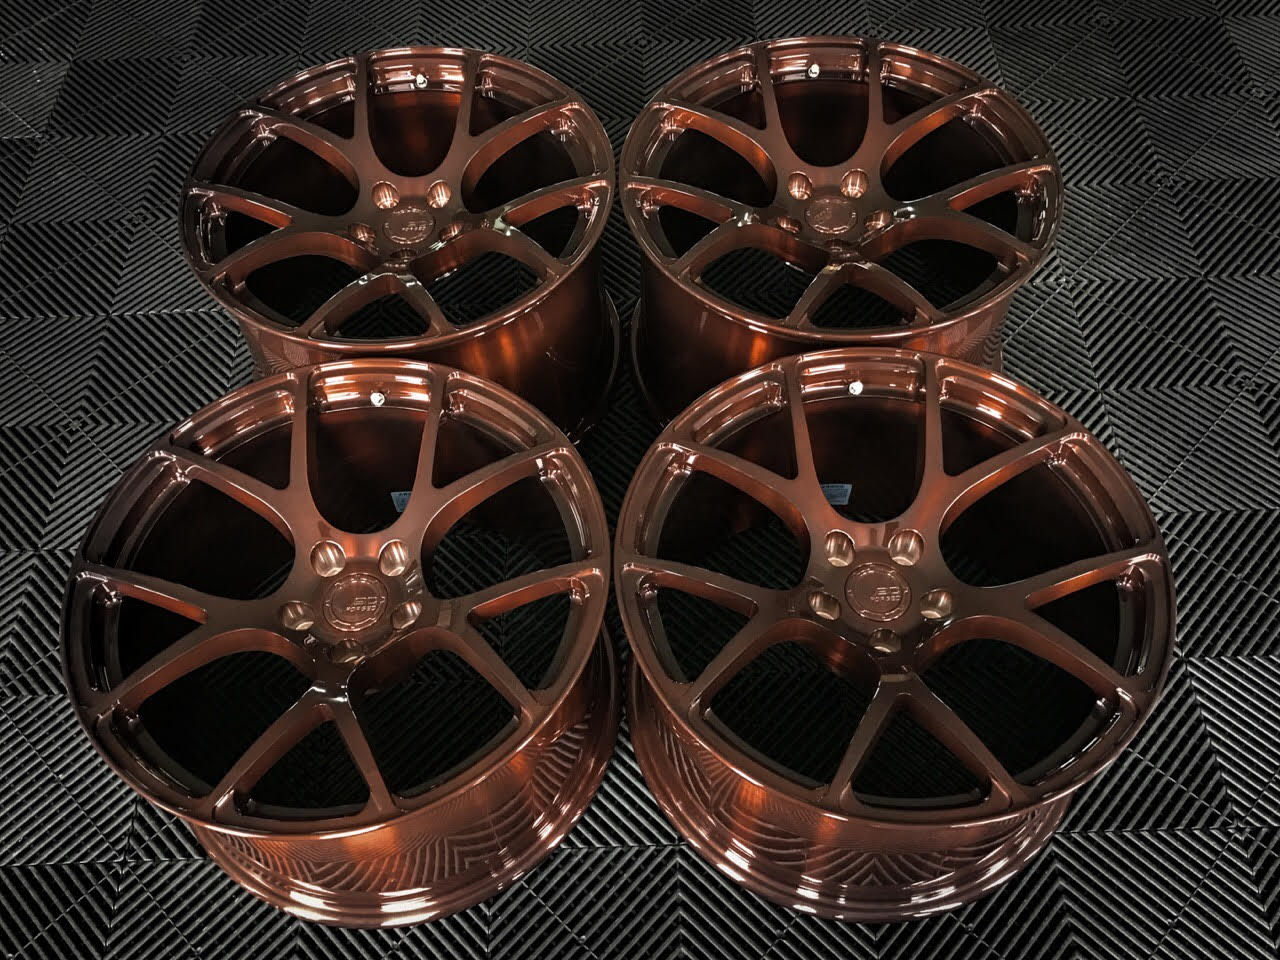 BC-FORGED-RS41-CONCAVE-CYRSTAL-COFFEE-SHELBY-GT350-R-WHEELS.jpg